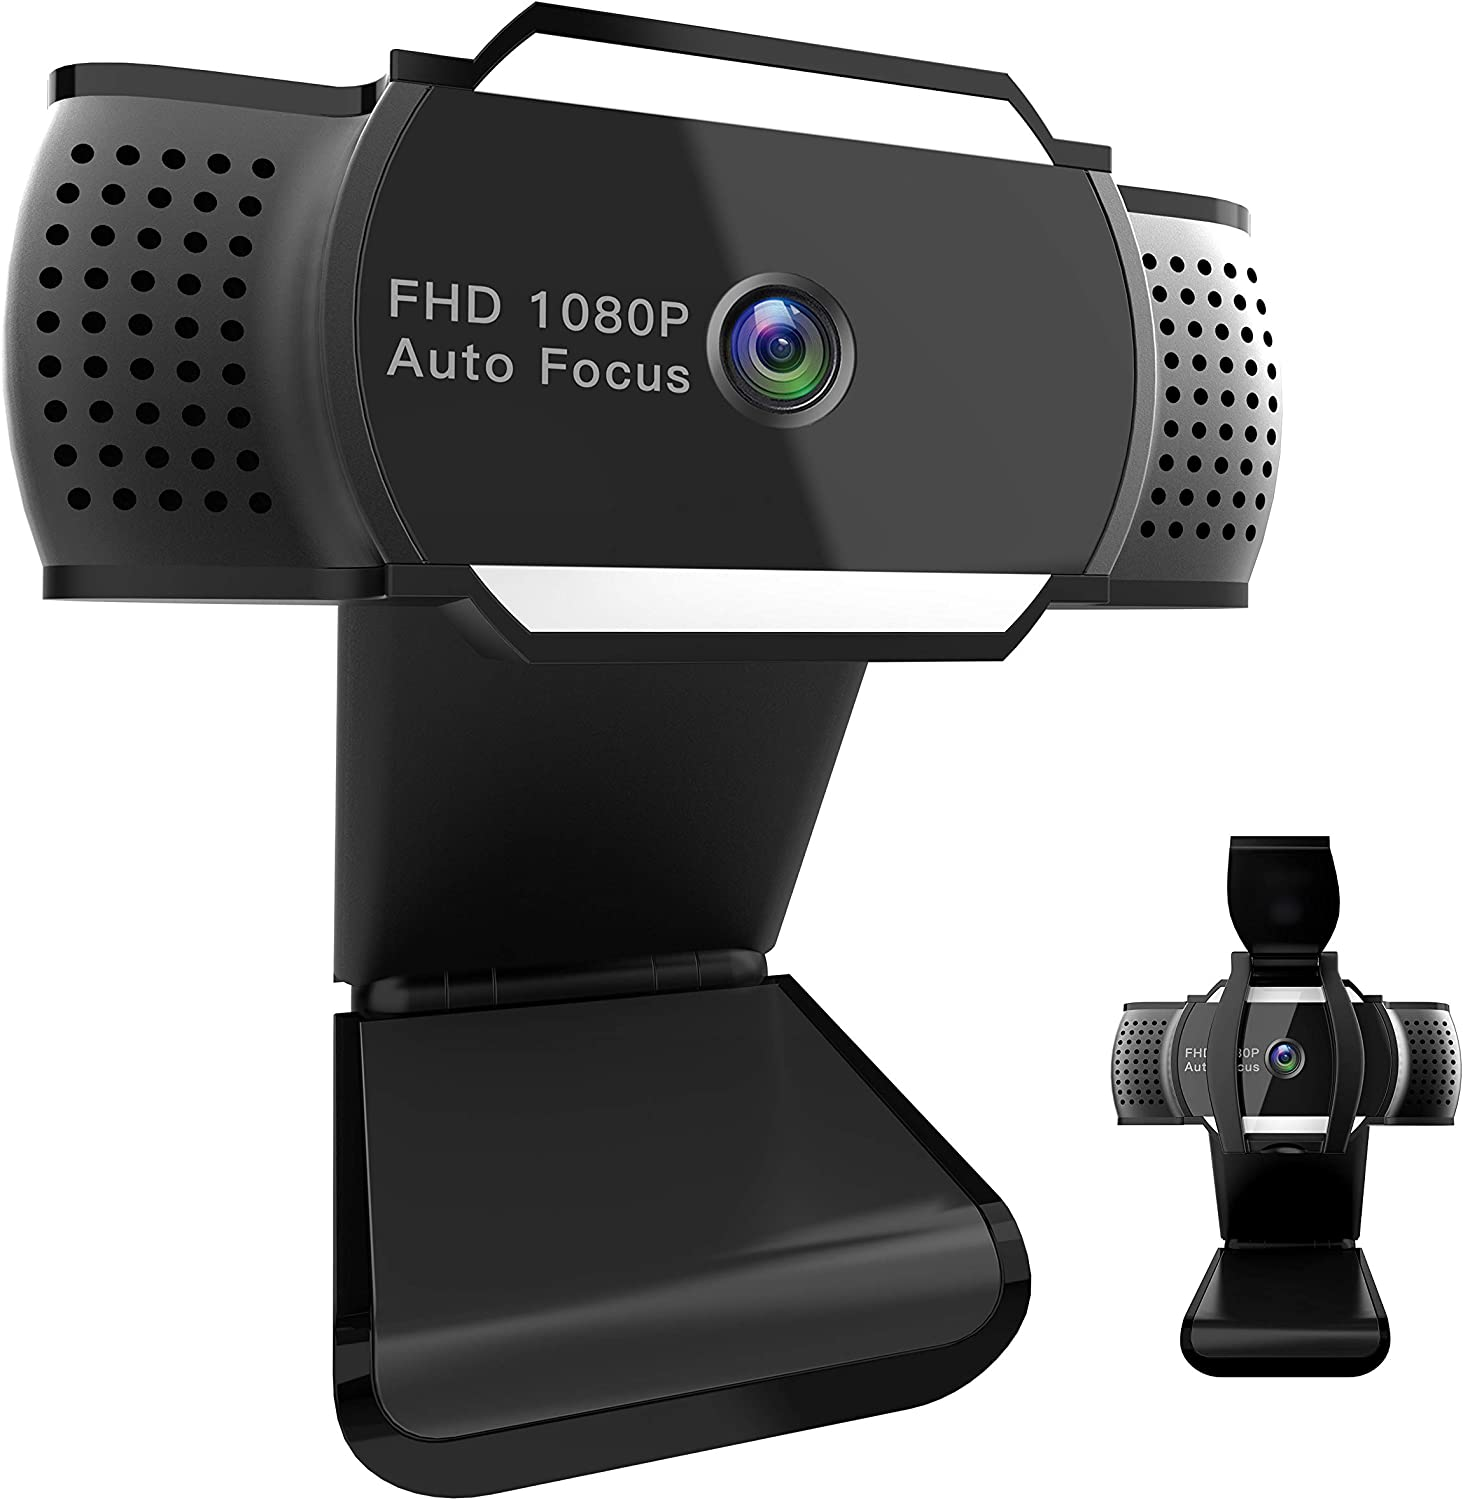 Webcam 1080P with Privacy Shutter, Fogeek HD Autofocus Web Camera with Mics for Conferencing, Video Calling, Recording, Streaming, Gaming [Free-Driver Installation] USB Camera for PC Laptop